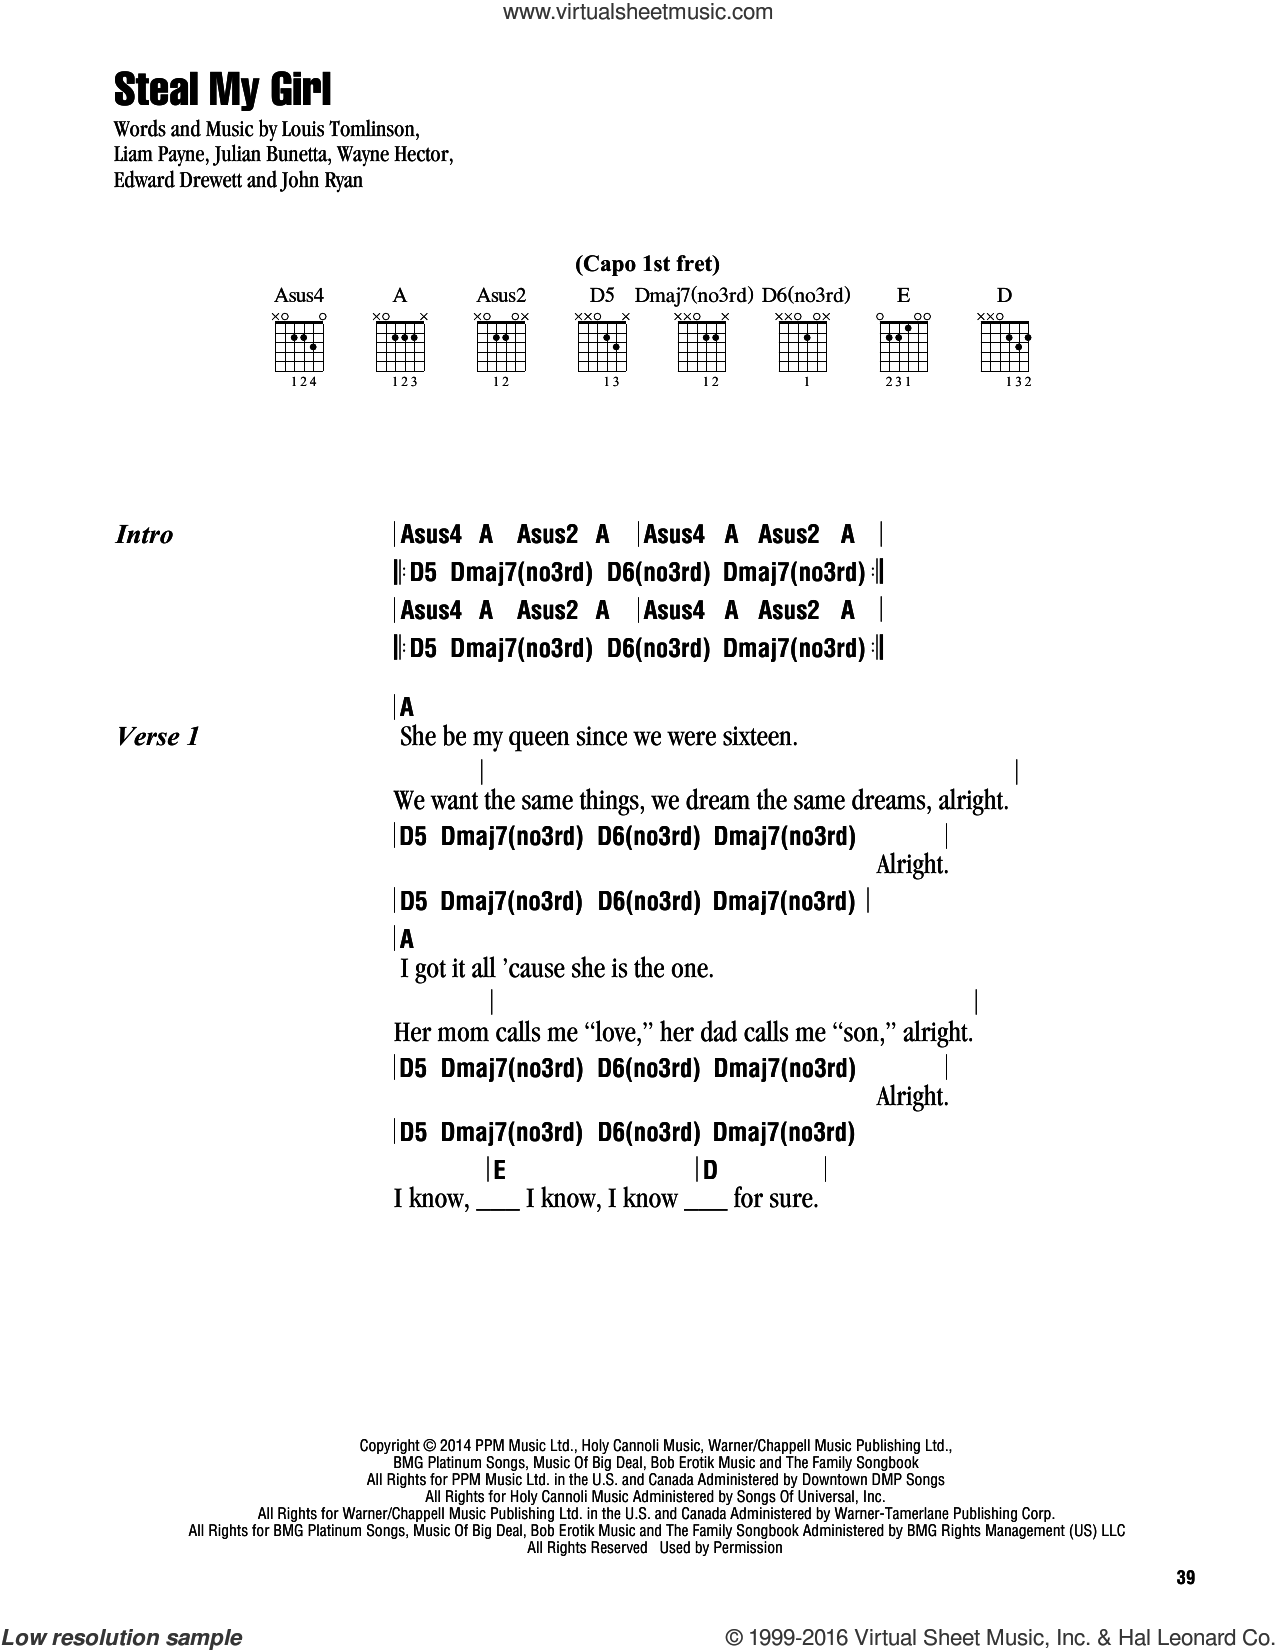 Direction Steal My Girl Sheet Music For Guitar Chords Pdf